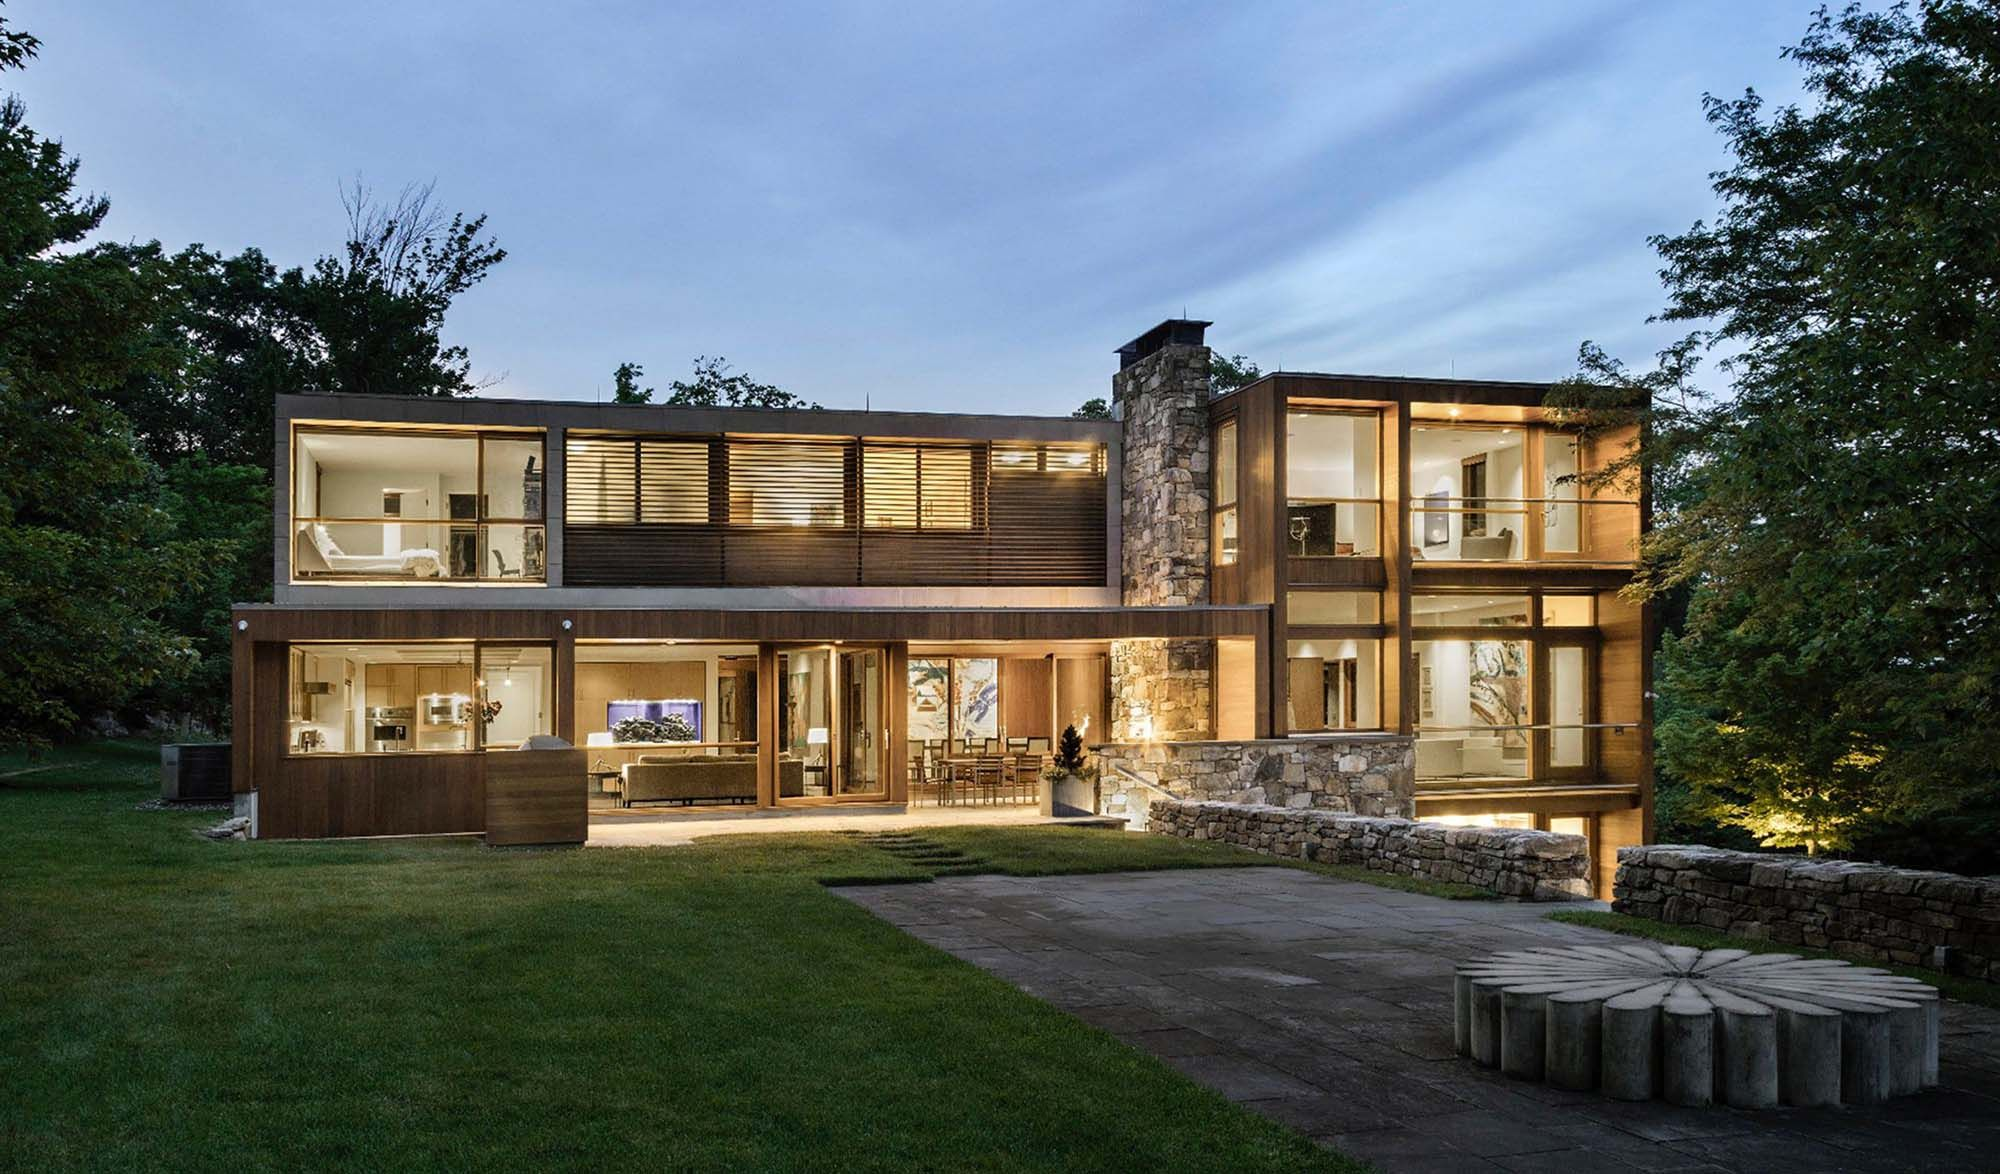 Contemporary Home With Flat Roof Modern Exterior Contemporary House Design House Design